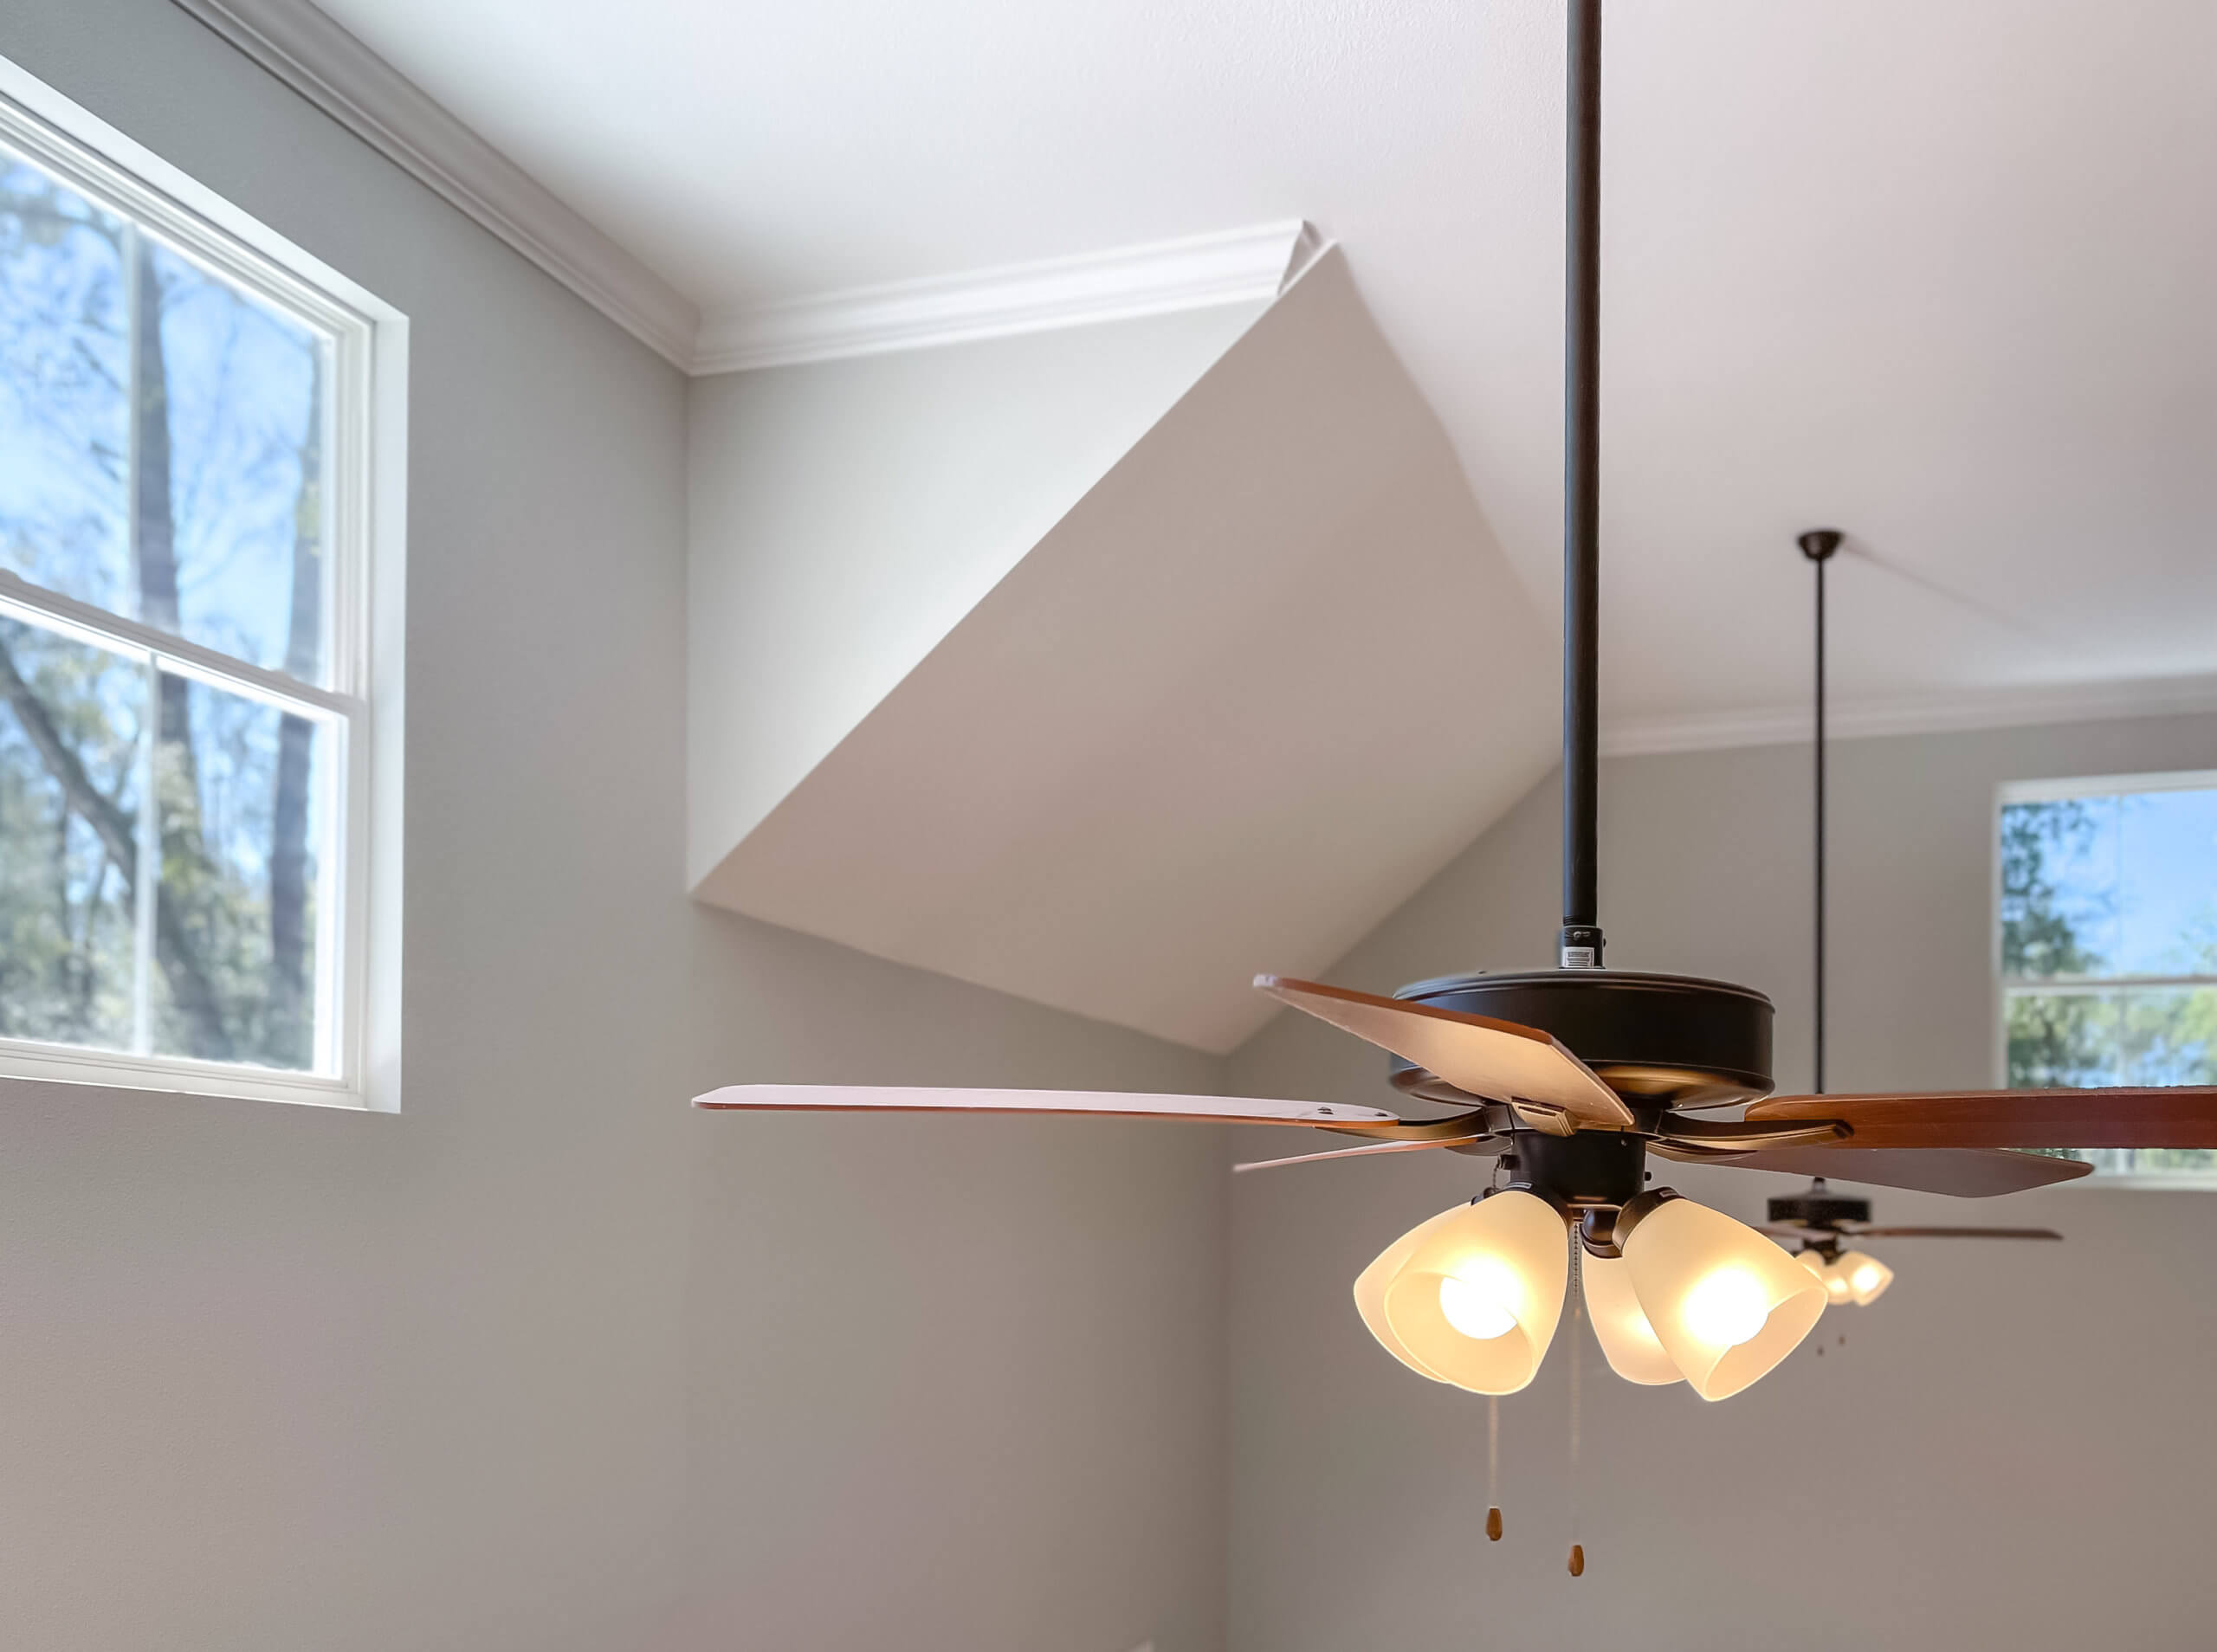 Get The Most Out Of Your Air Conditioning This Summer With Ceiling Fan Installation